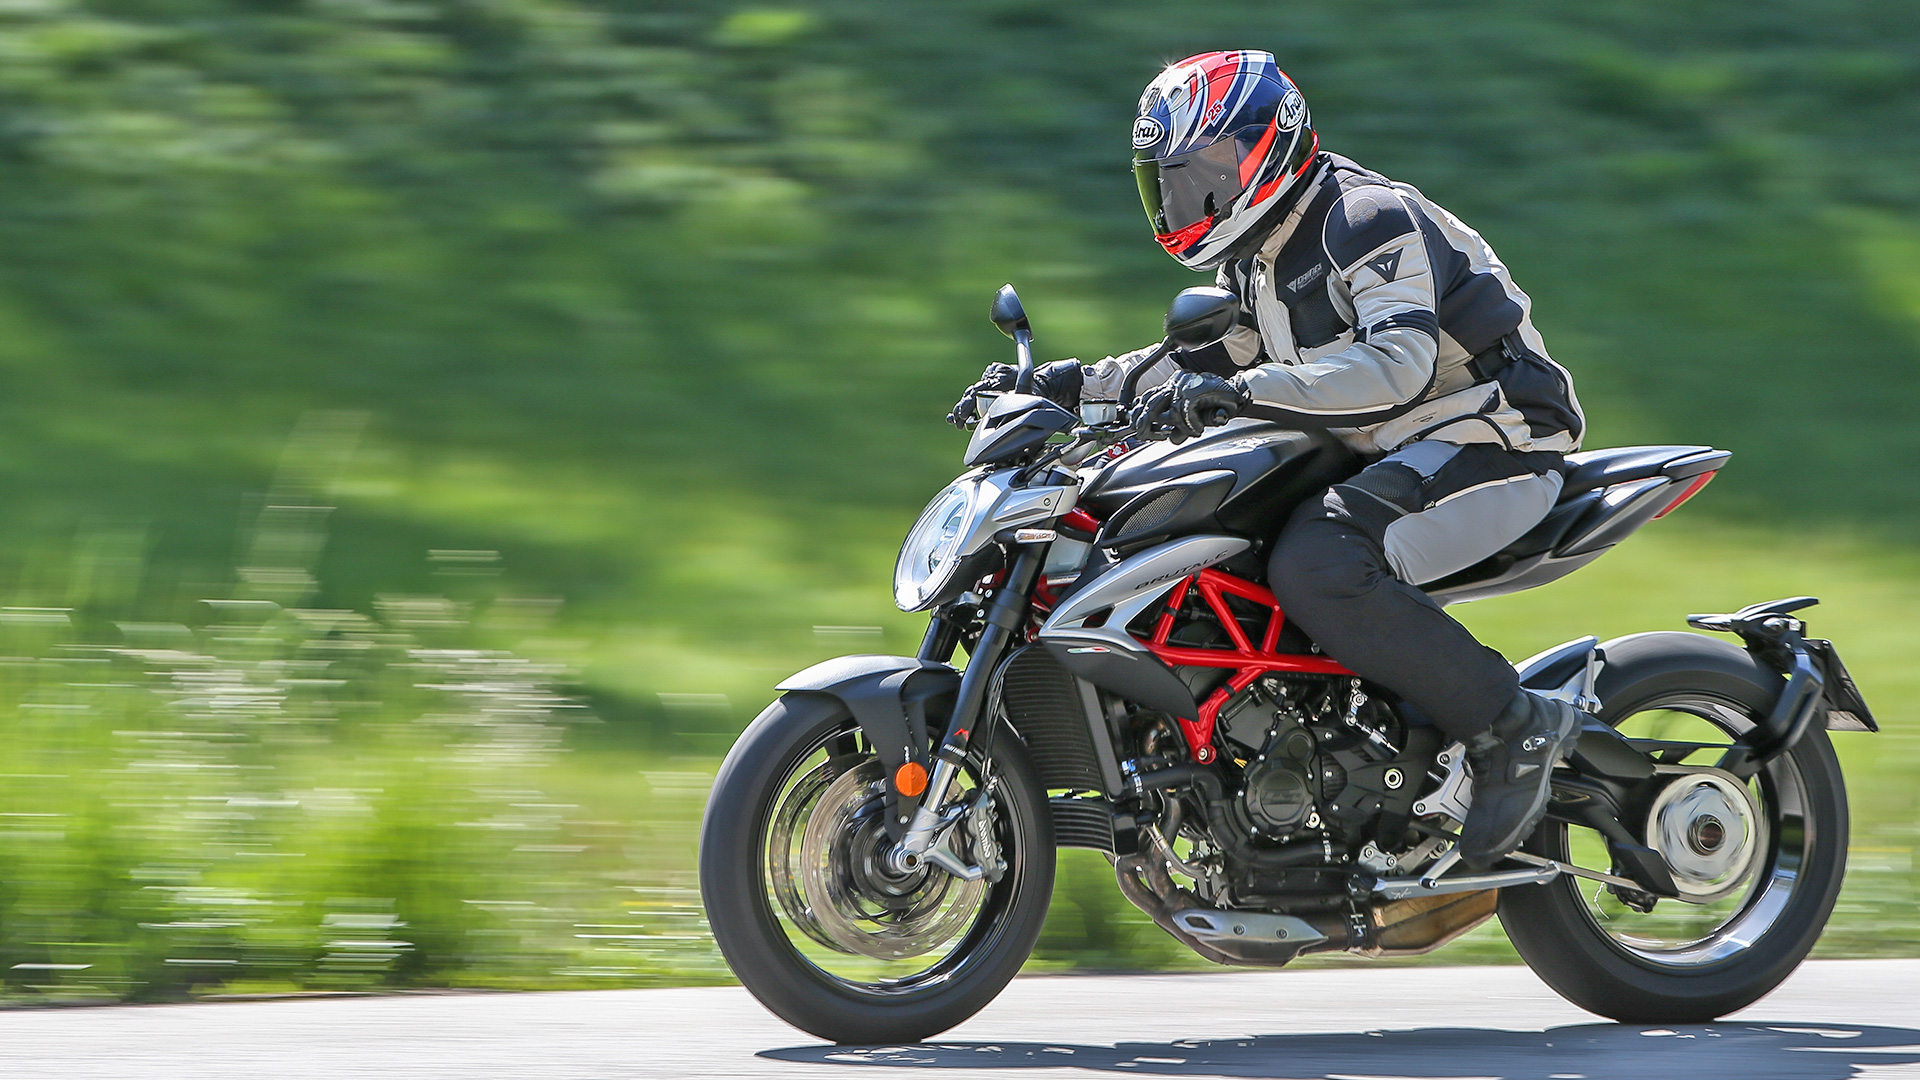 Mv Agusta Brutale 2017 800 Price Mileage Reviews